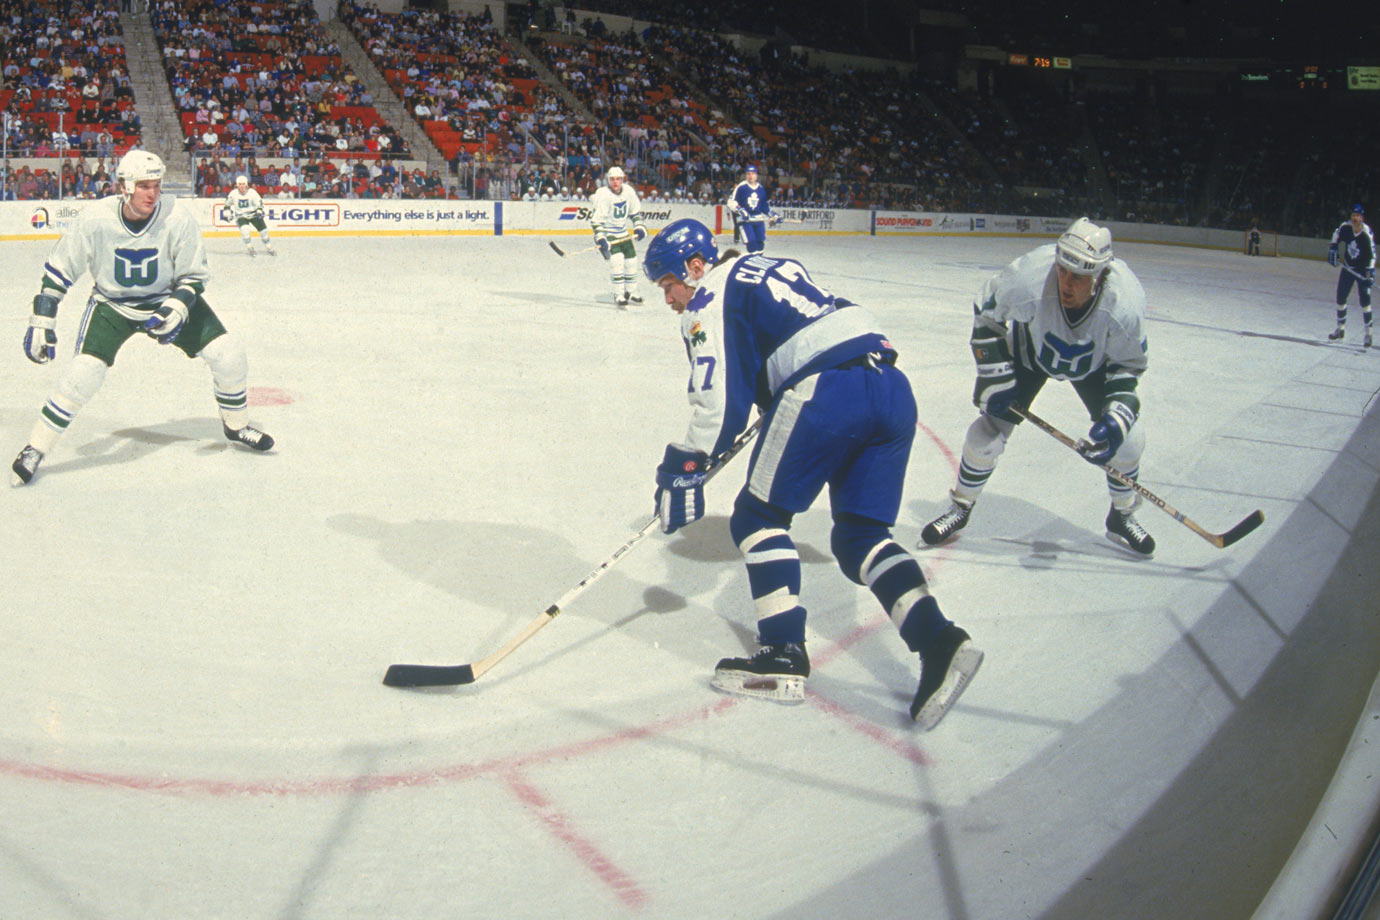 One of the most revered Leafs, the aggressive, roughneck Clark scored 34 goals (with 227 PIM) as a rookie and was edged for the Calder by Flames defenseman Gary Suter. Clark later attained the Leafs' captaincy, but was plagued by injuries and traded to Quebec for Mats Sundin in 1994. Clark retired in 2000, having scored 330 goals for six teams. — Notable picks: No. 2: Craig Simpson, LW, Pittsburgh Penguins | No. 27: Joe Nieuwendyk, C, Calgary Flames | No. 28: Mike Richter, G, New York Rangers | No. 52: Bill Ranford, G, Boston Bruins | No. 214: Igor Larionov, C, Vancouver Canucks